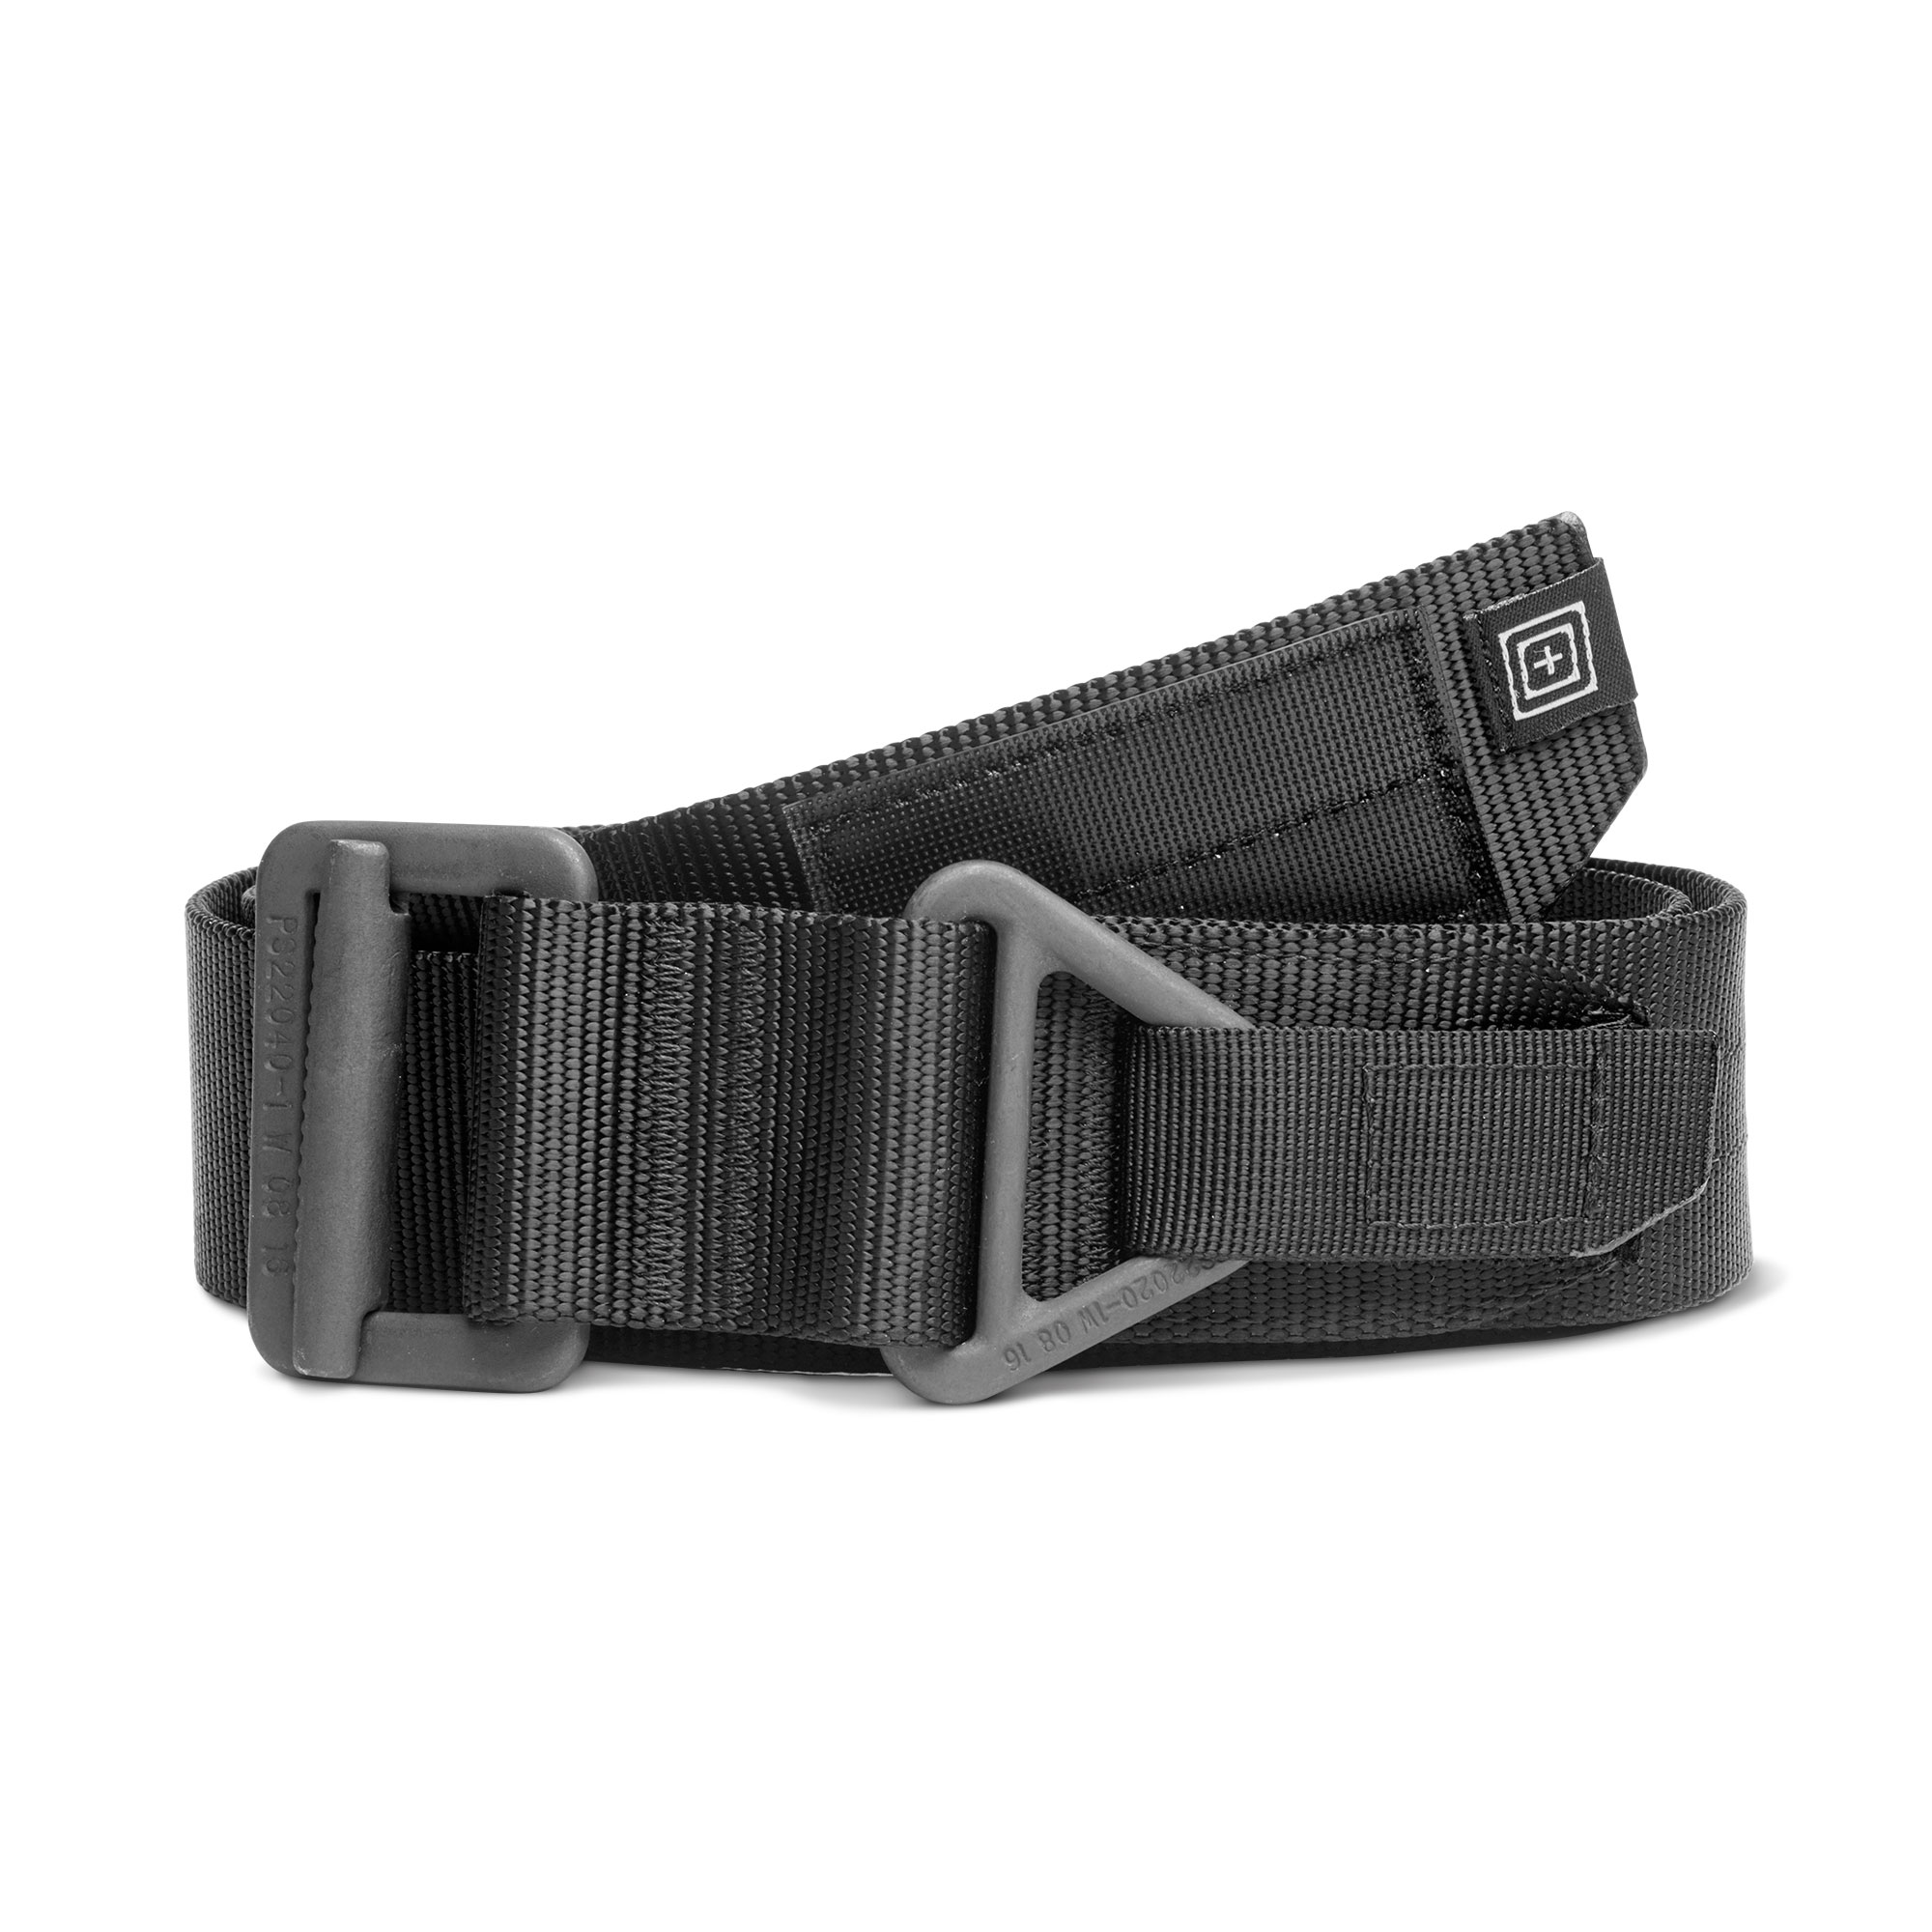 Alta Belt - 5 11 Tactical